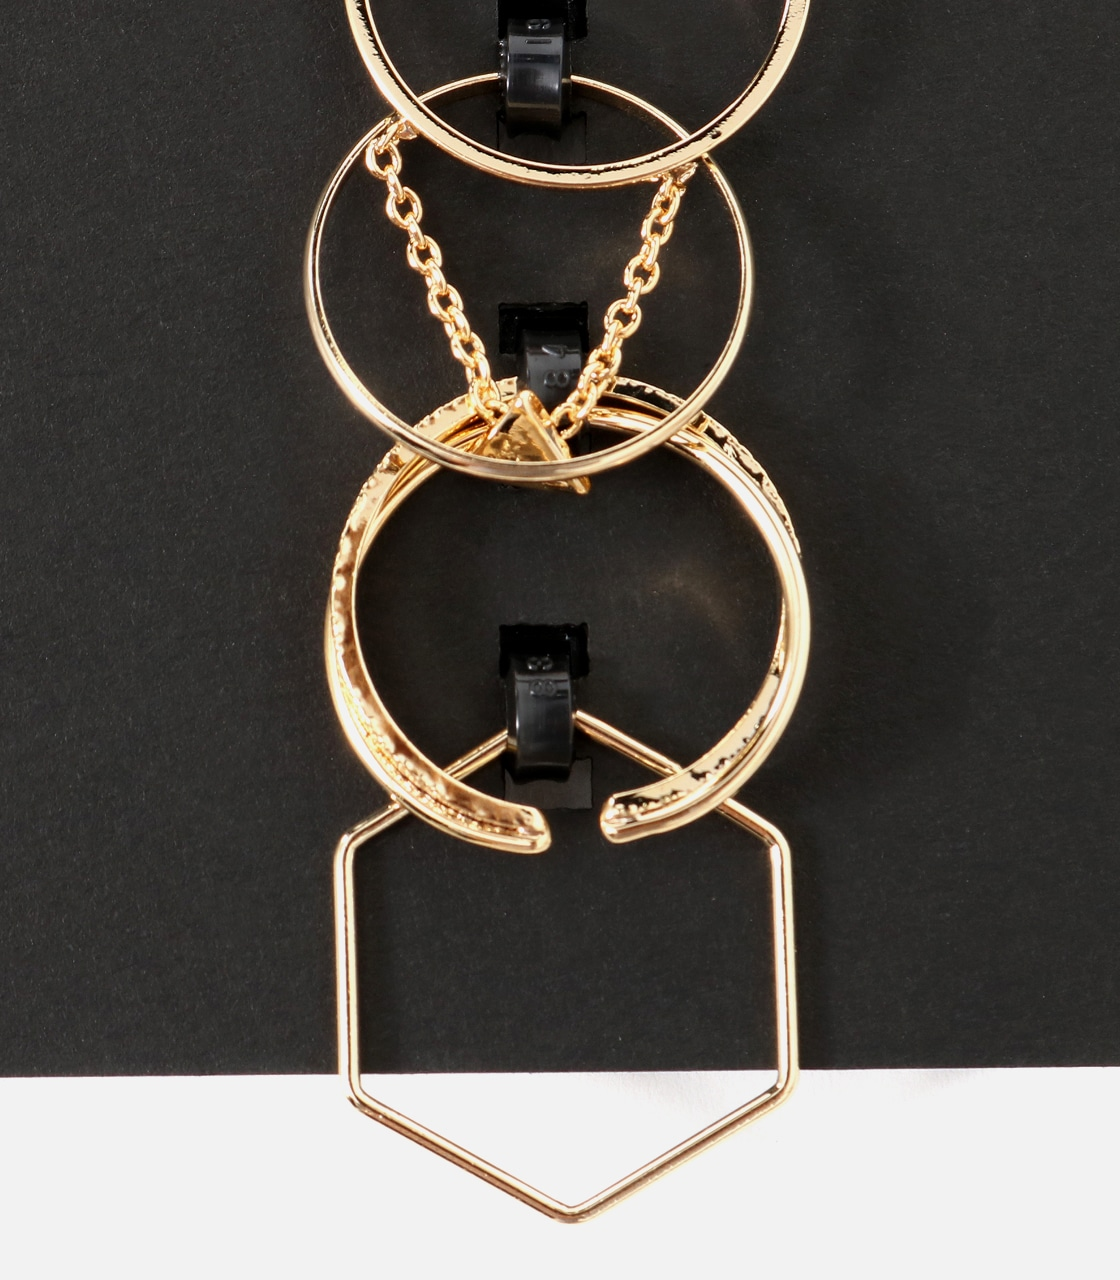 【AZUL BY MOUSSY】チェーンモチーフ5本SETリング 詳細画像 L/GLD 3